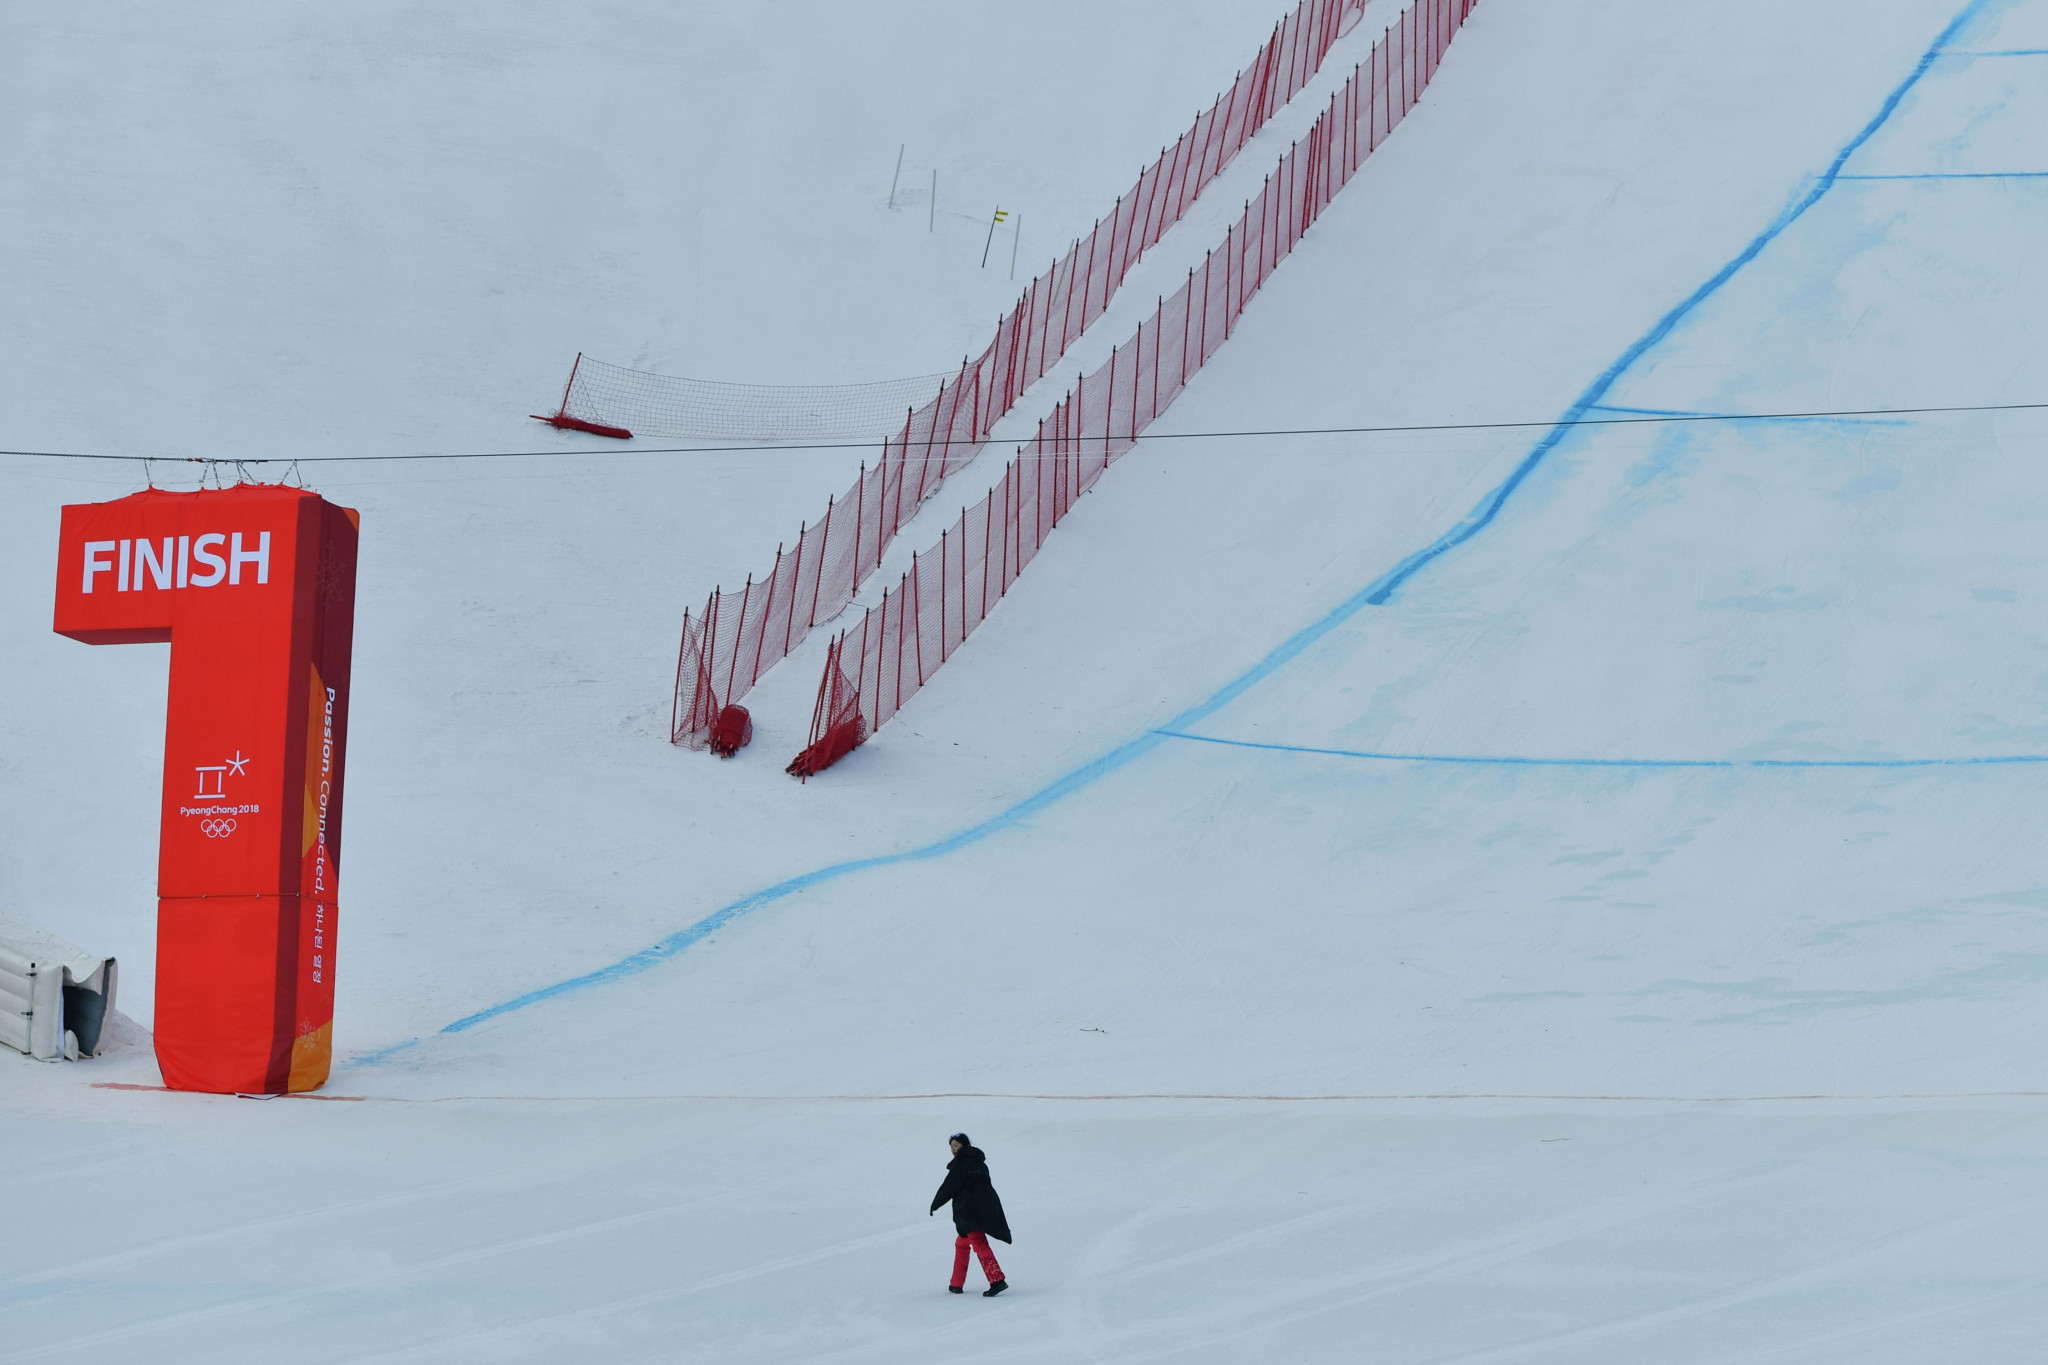 Strong winds force postponement of men's downhill at Pyeongchang 2018